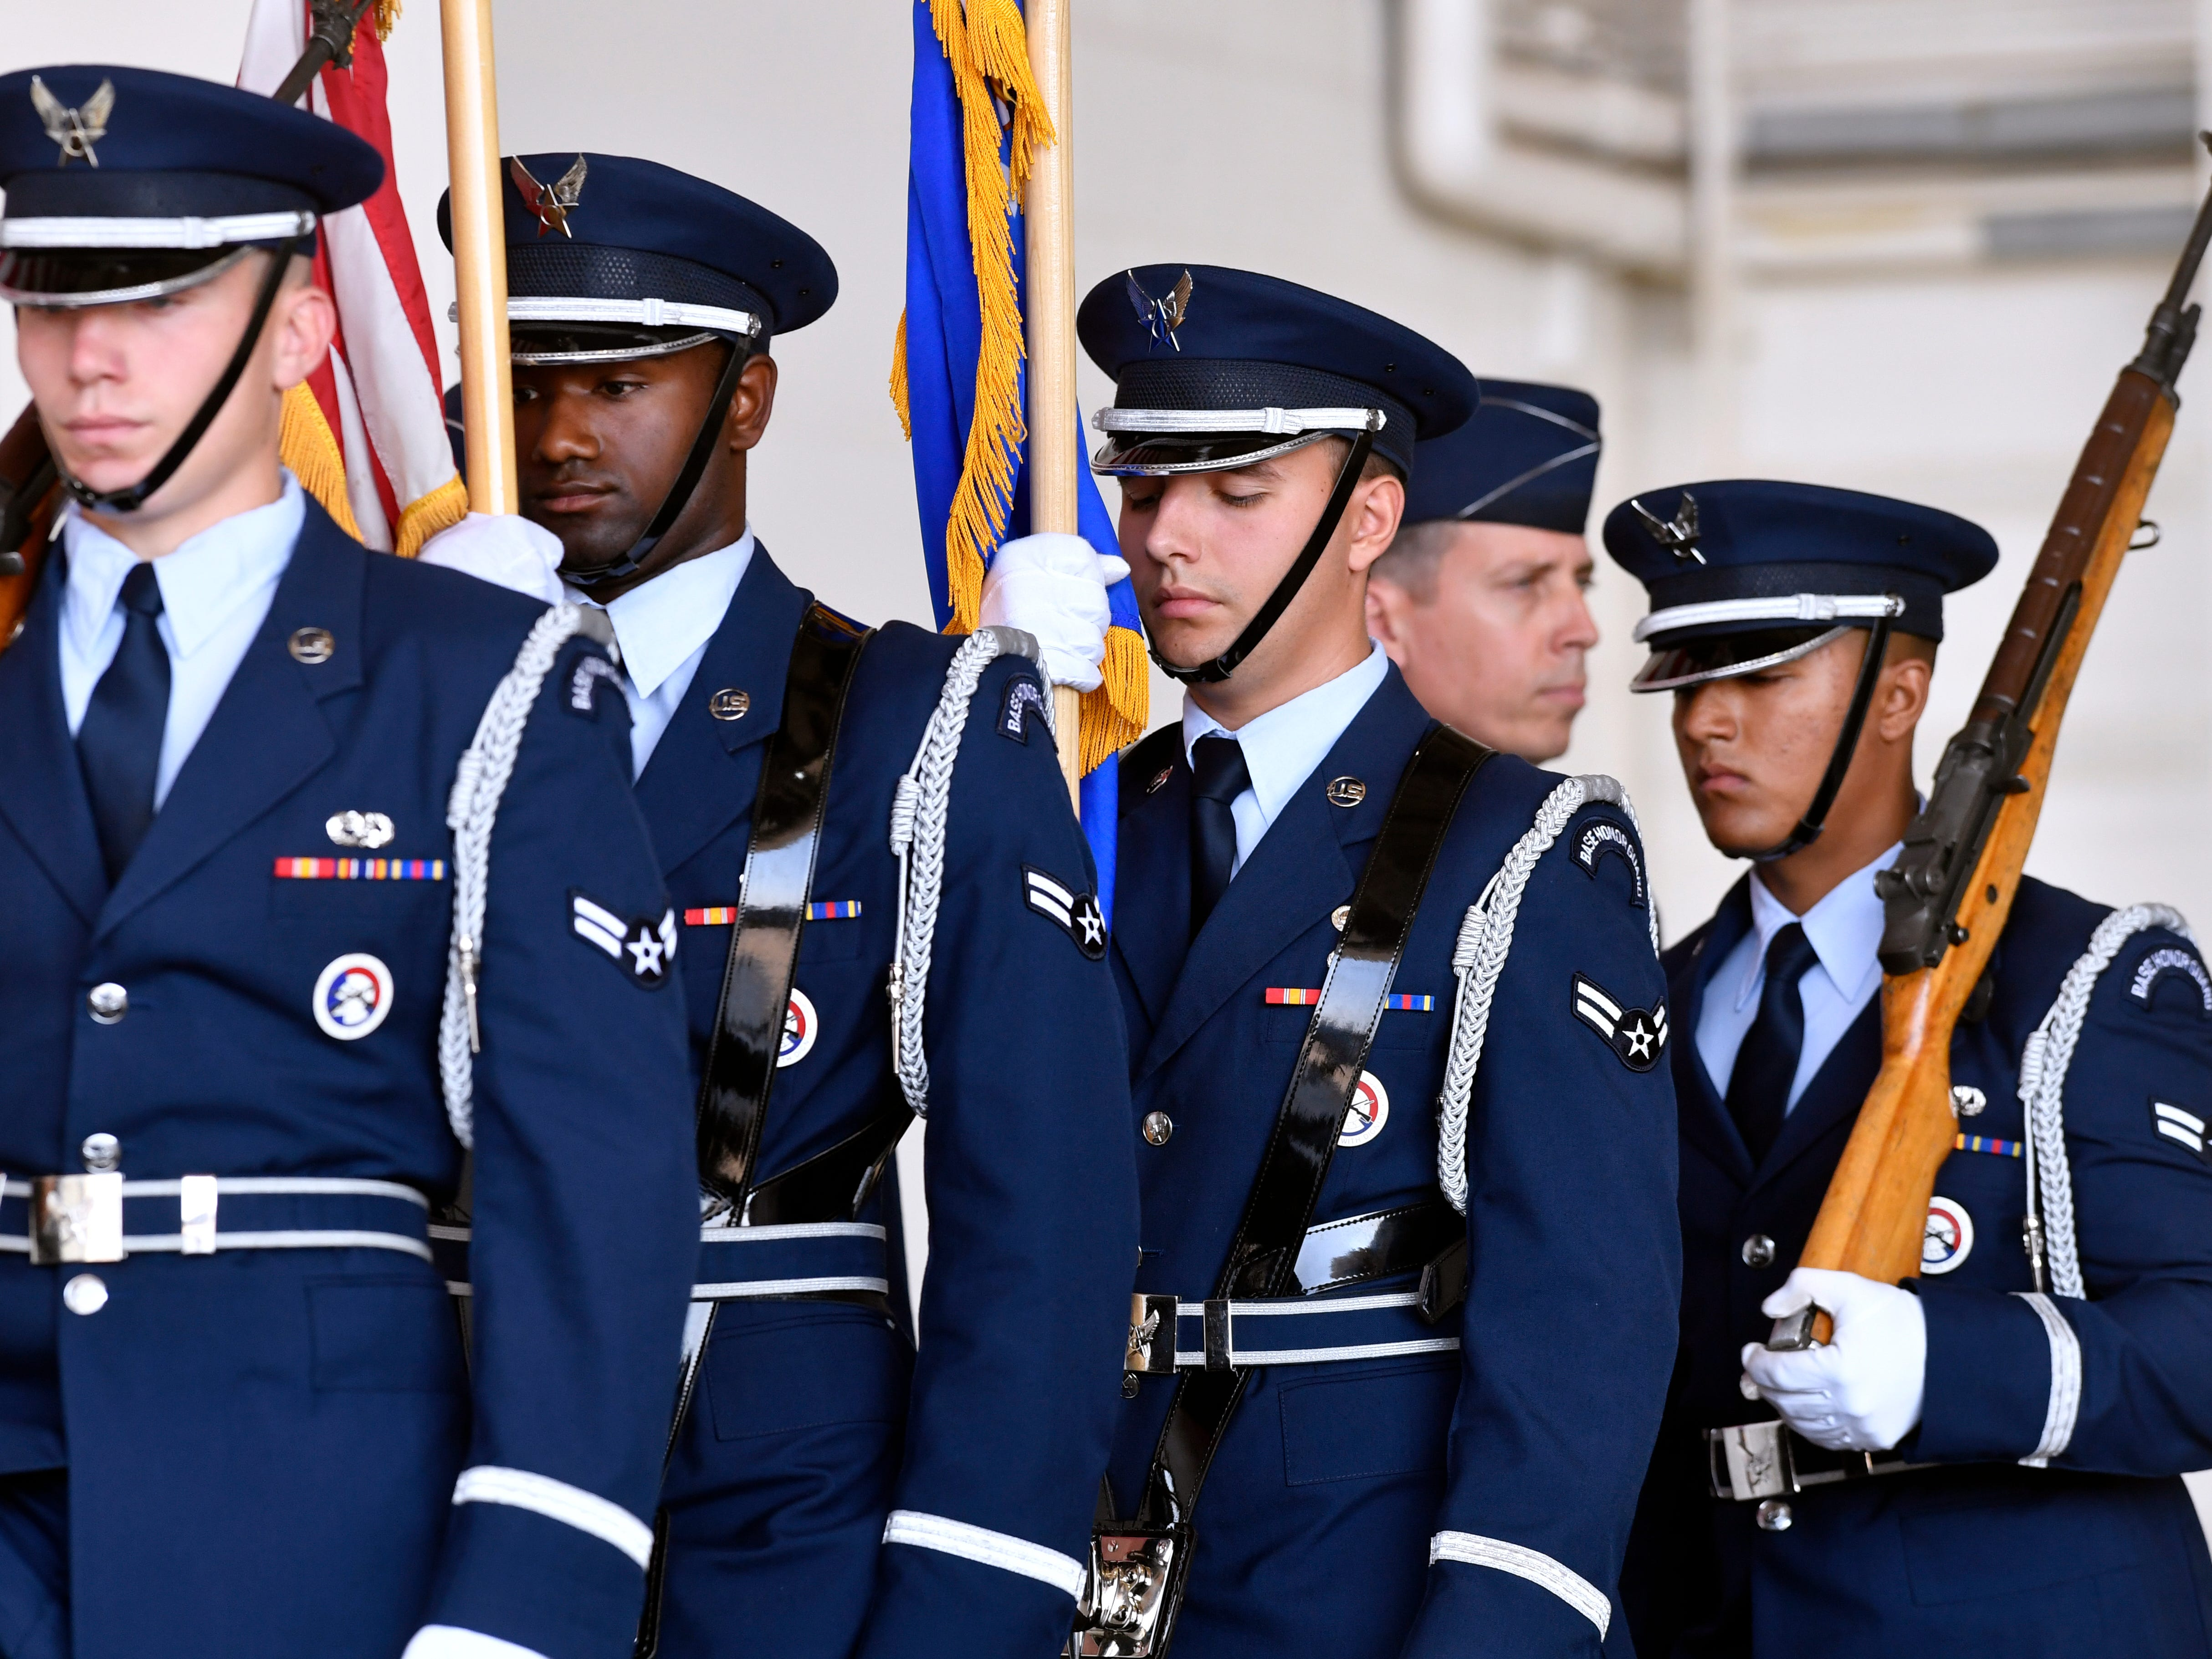 Members of the Dyess Air Force Base Honor Guard march past Col. Jeffrey Mensaco during the assumption of command ceremony for the 317th Airlift Wing Friday August 3, 2018. Menasco was named the wing's new commander during the proceedings.